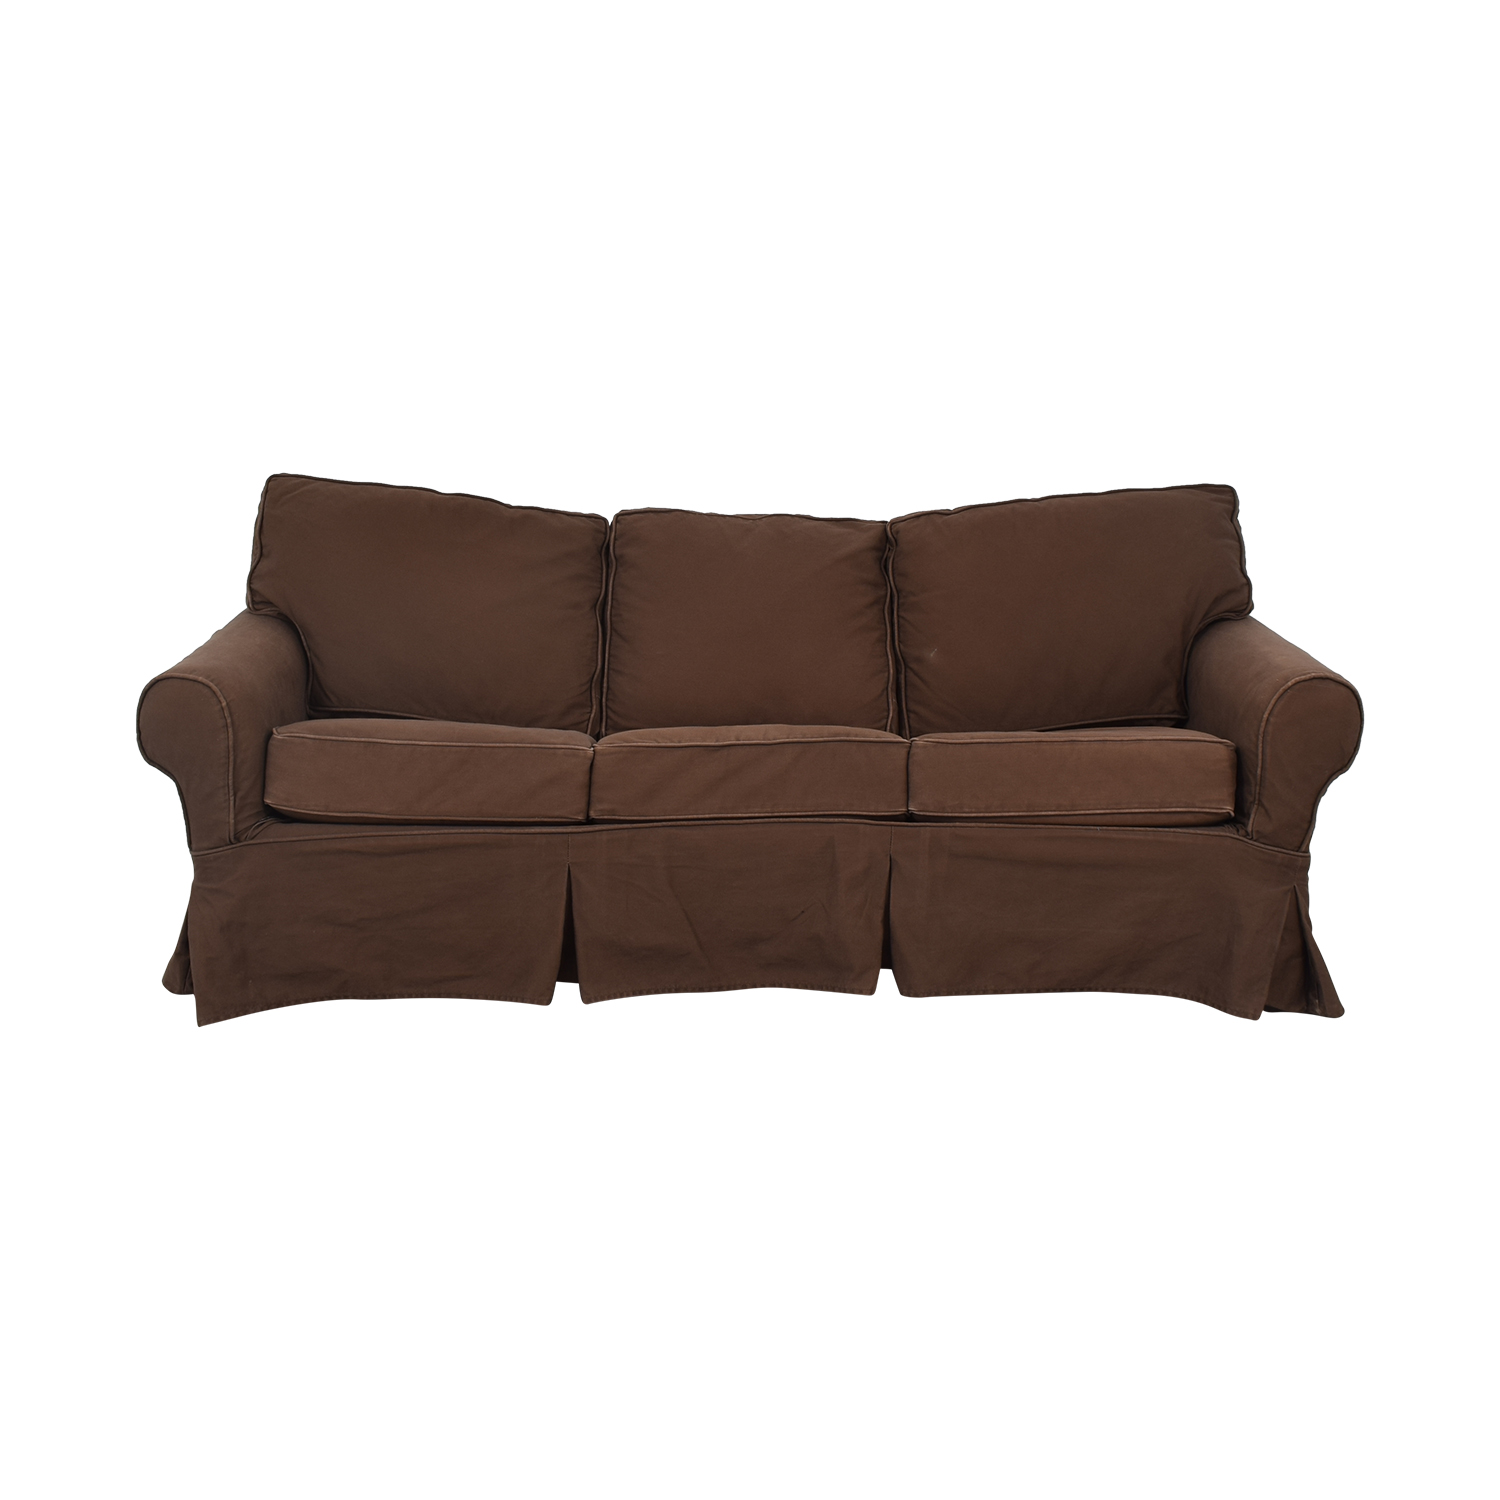 buy Mitchell Gold + Bob Williams Pottery Barn by Mitchell Gold + Bob Williams Sleeper Sofa online